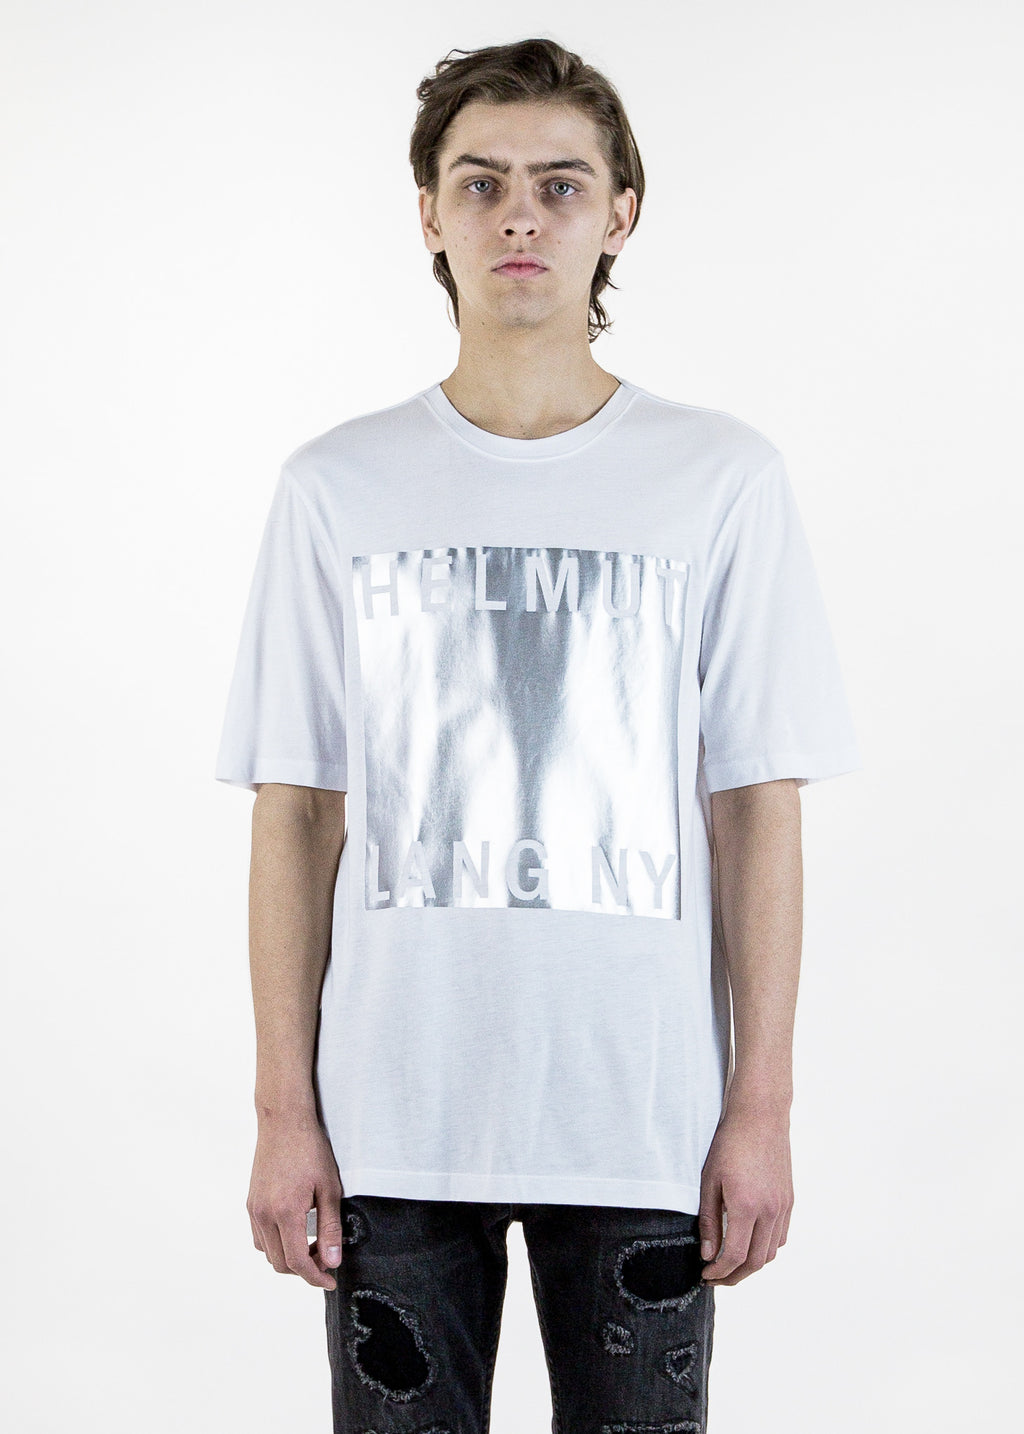 Helmut Lang, White Box Film Print T-Shirt, 017 Shop